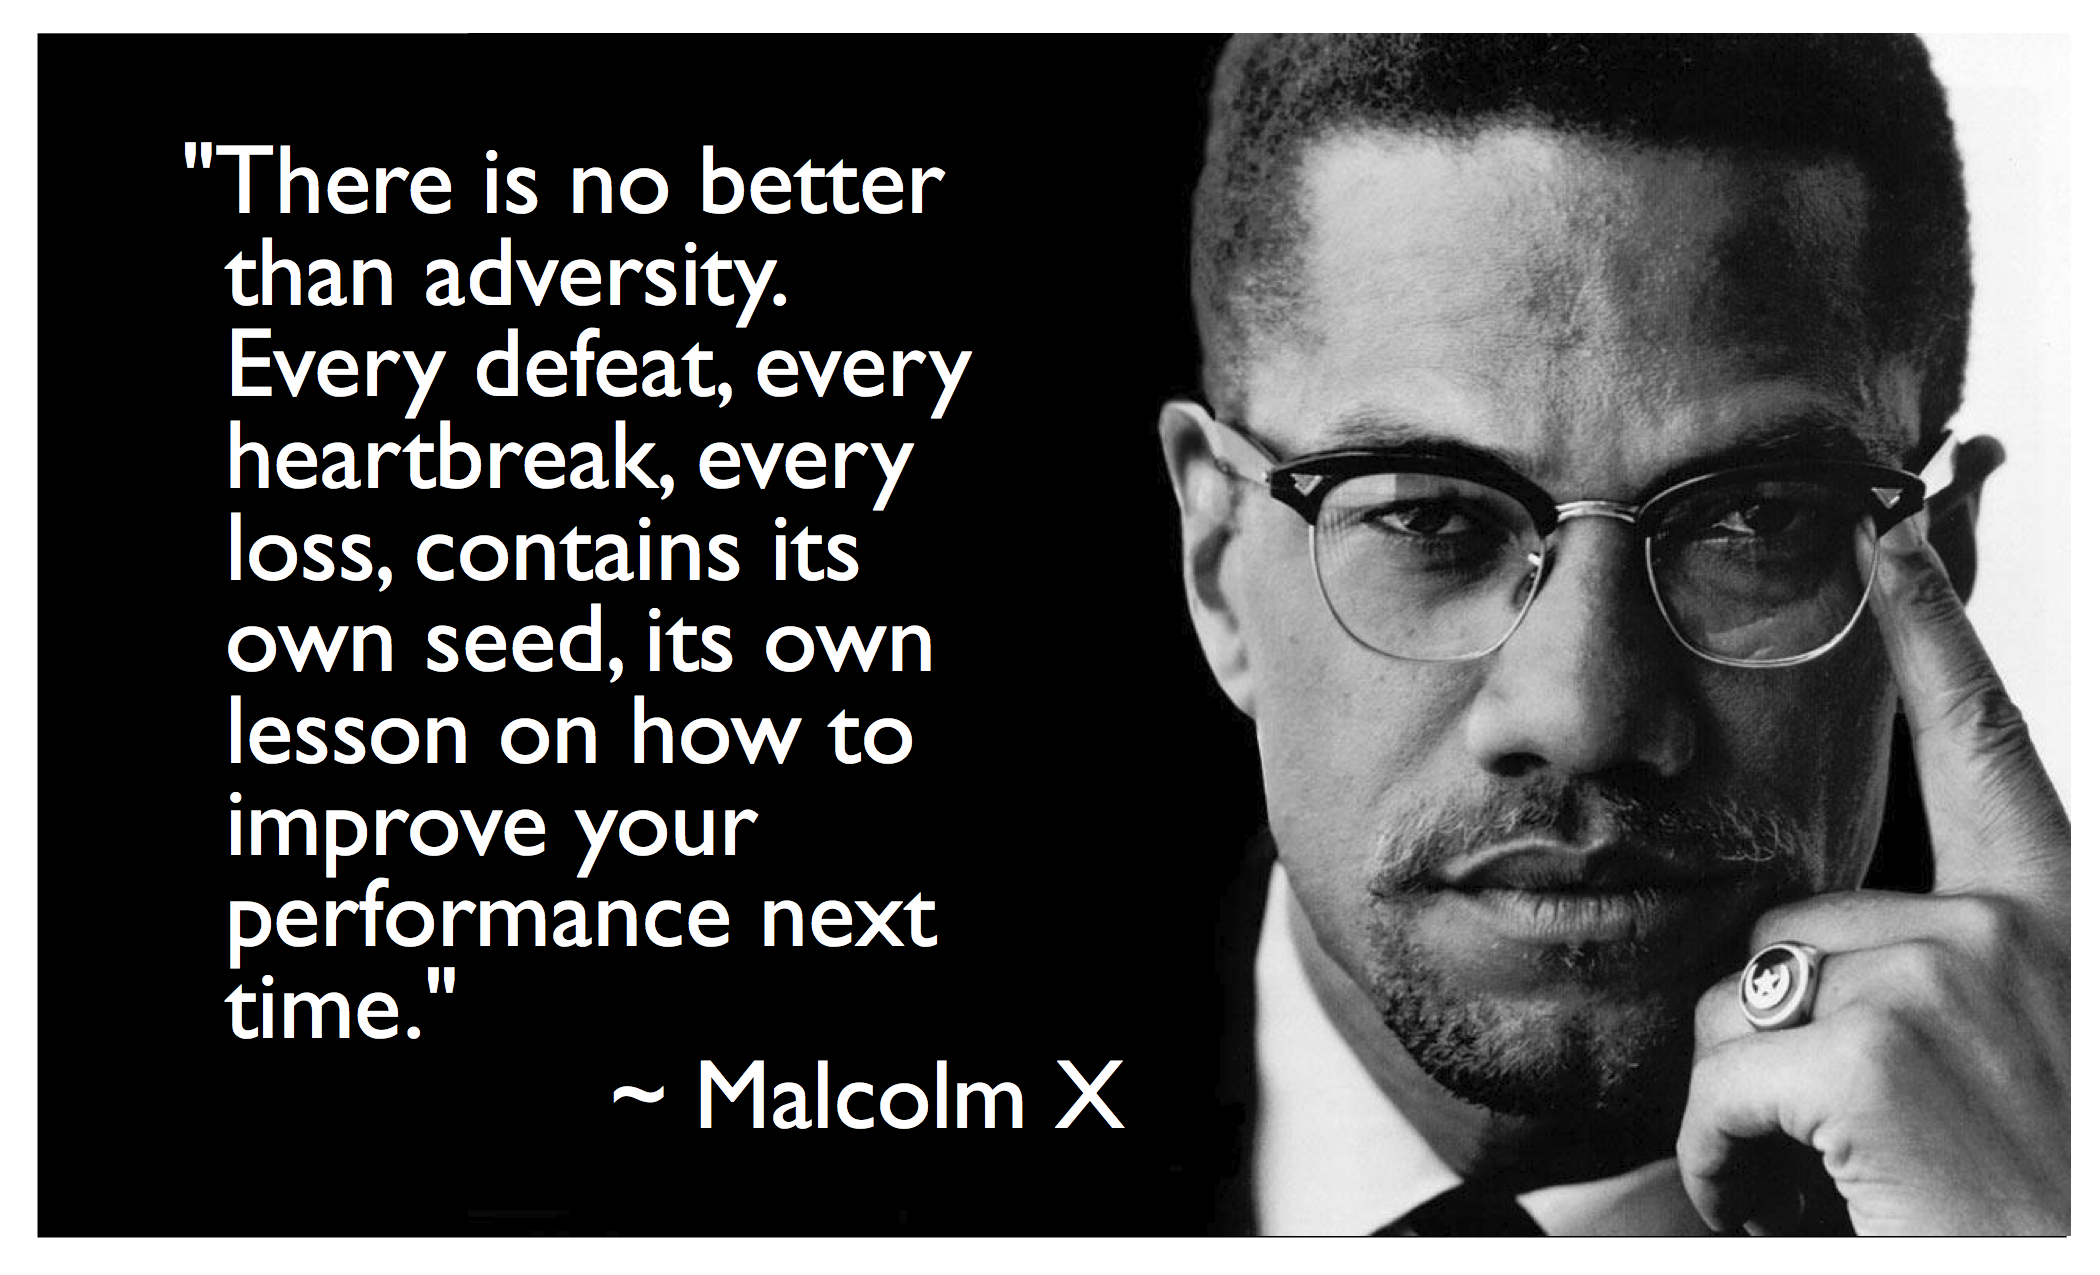 literary devices malcolm x In conclusion , malcolm x uses many language devices and rhetorical devices to engage the reader such as alliteration ,emotive language, lists, rhetorical questions, repetition ,short sentences ,opinions and a first person style of writing.